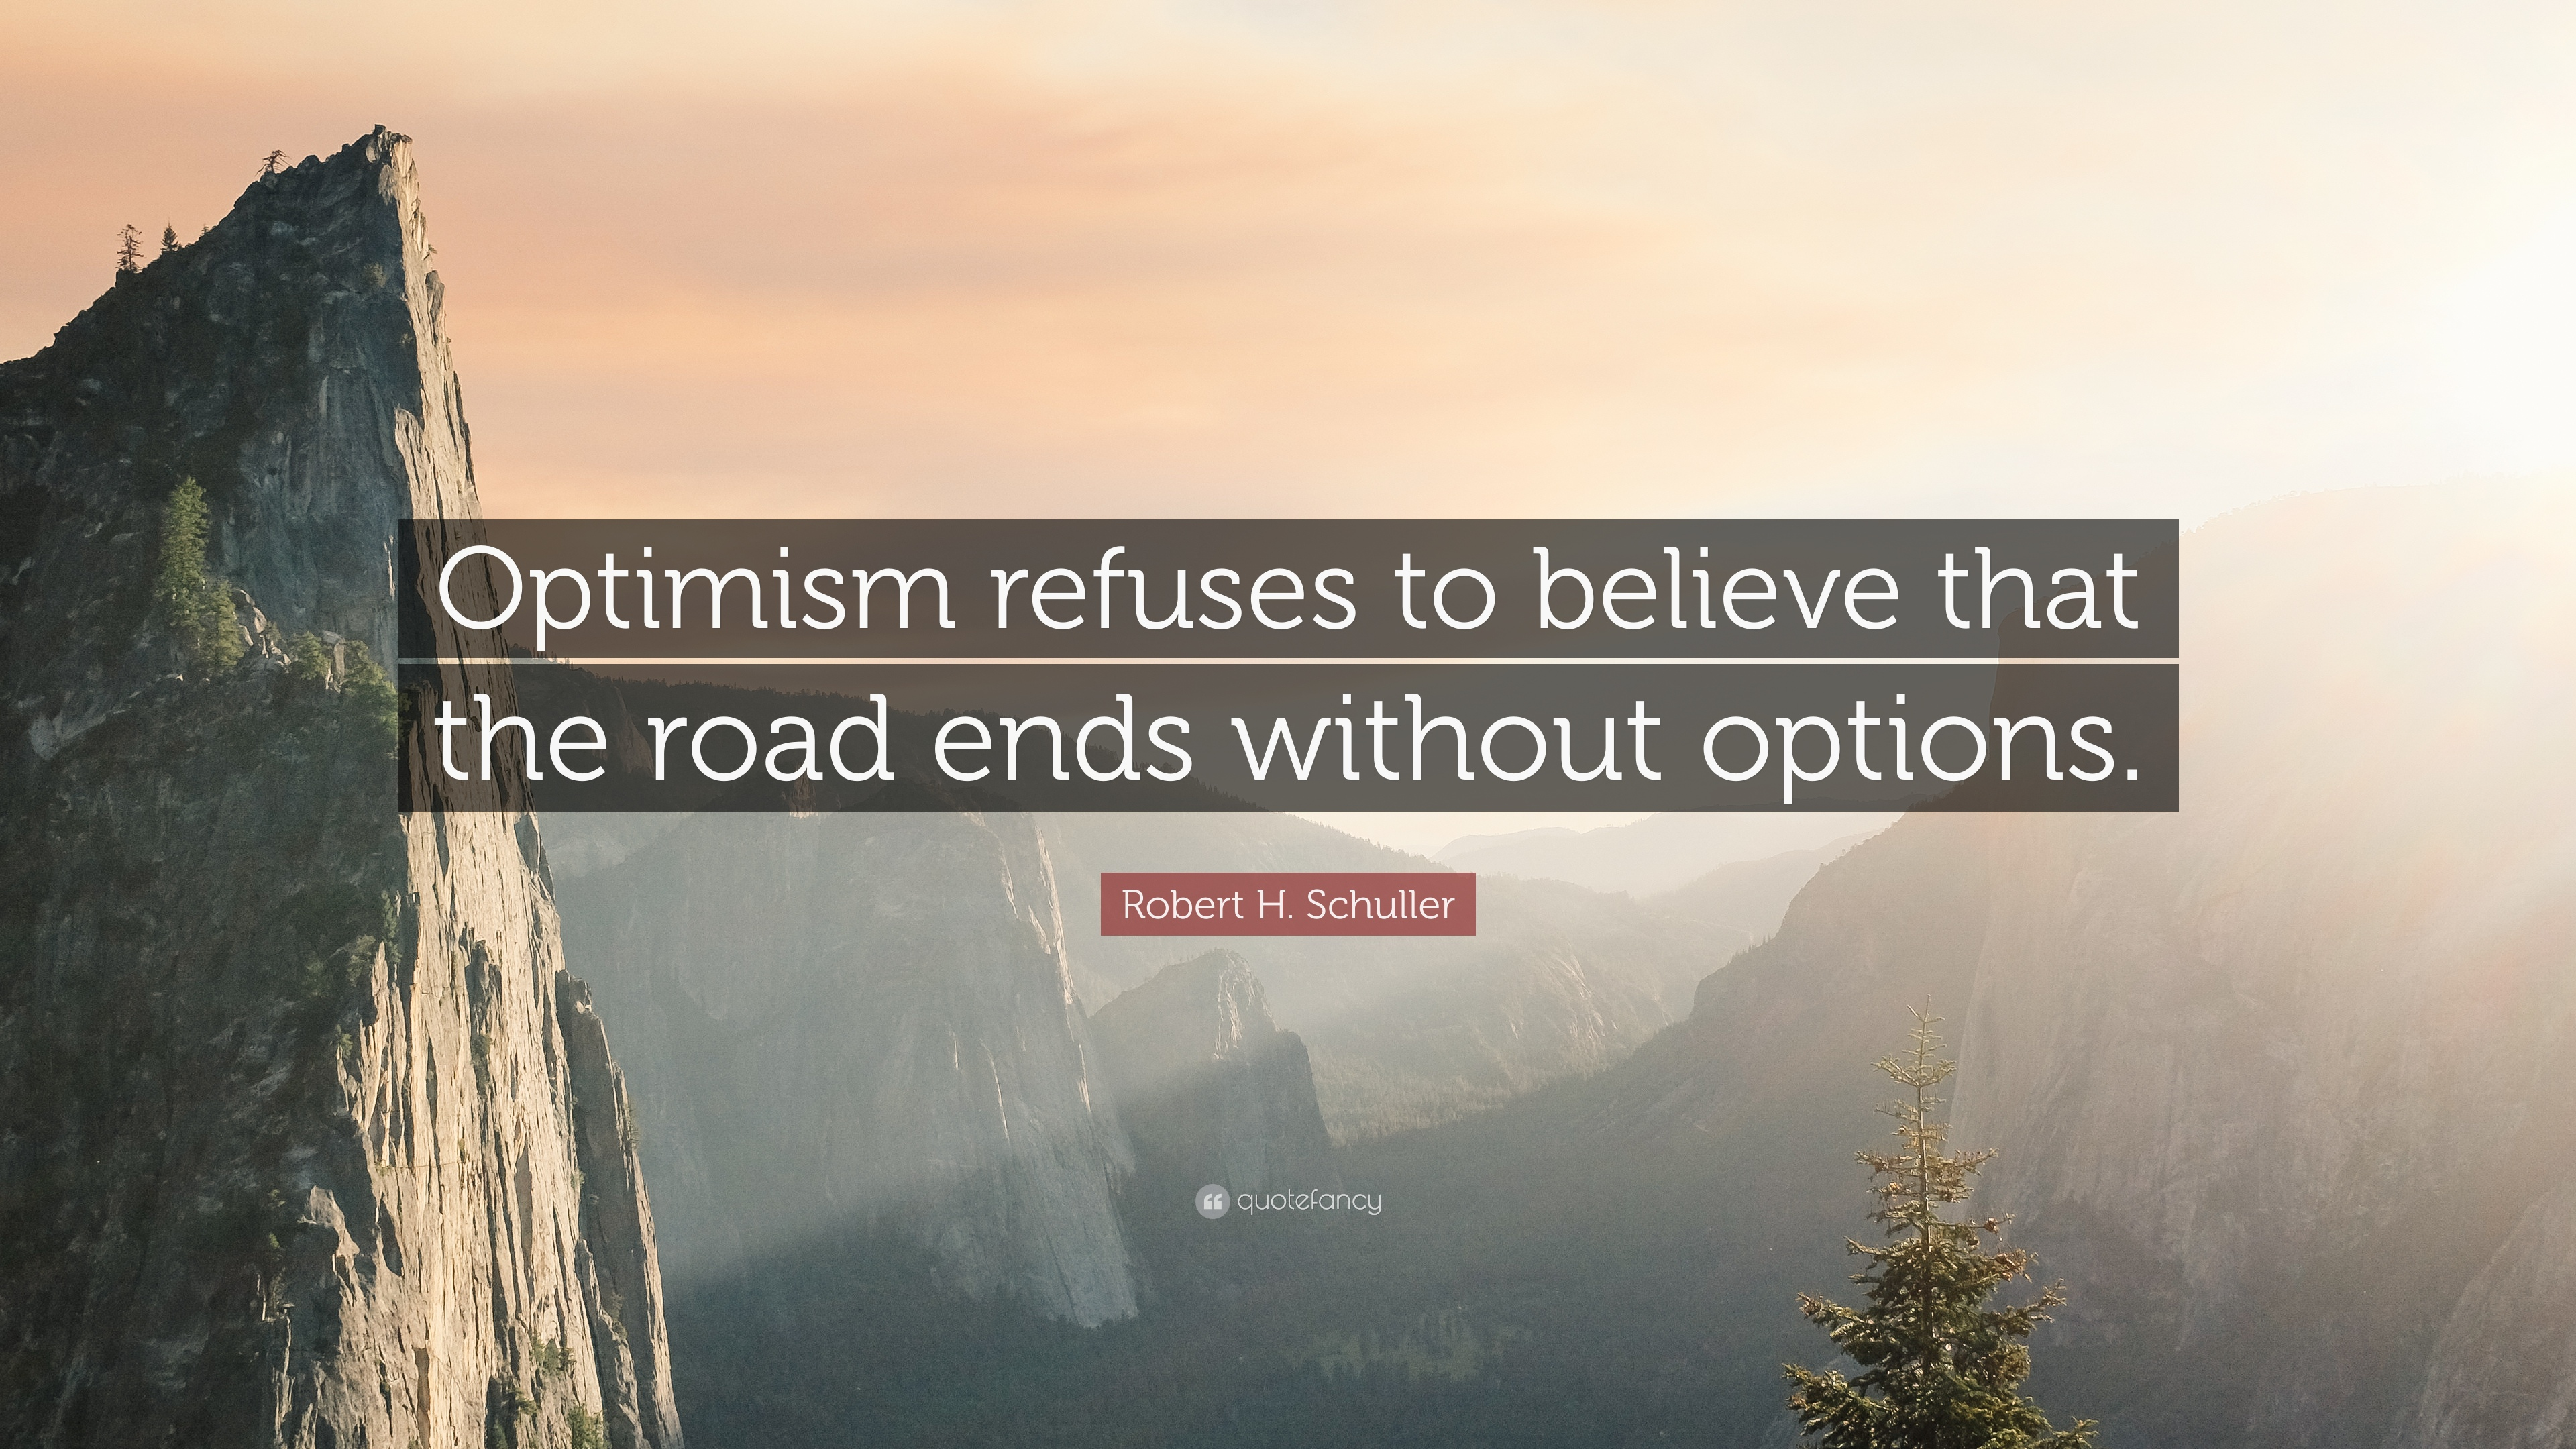 Quotes About Optimism | Robert H Schuller Quote Optimism Refuses To Believe That The Road